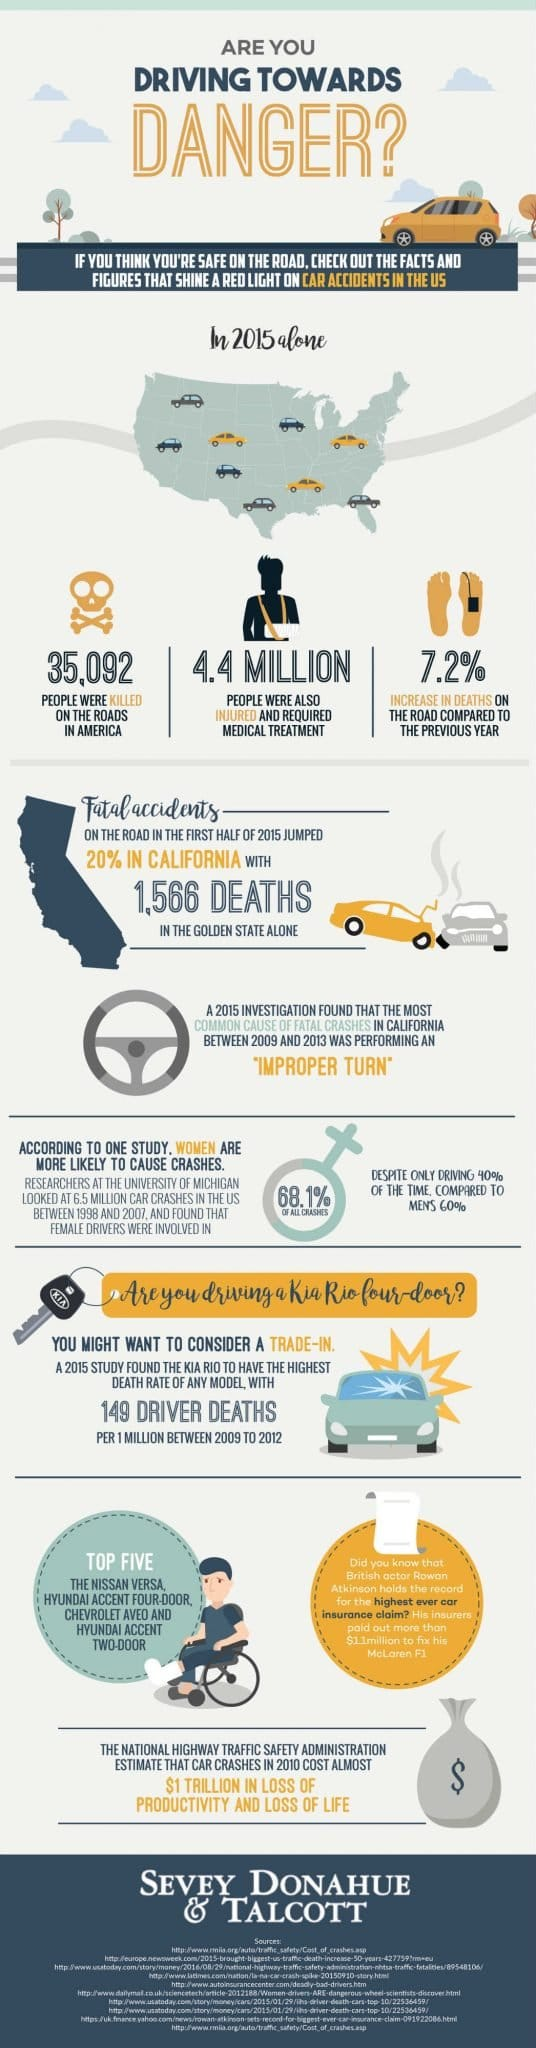 Are-you-driving-towards-danger-infographic123